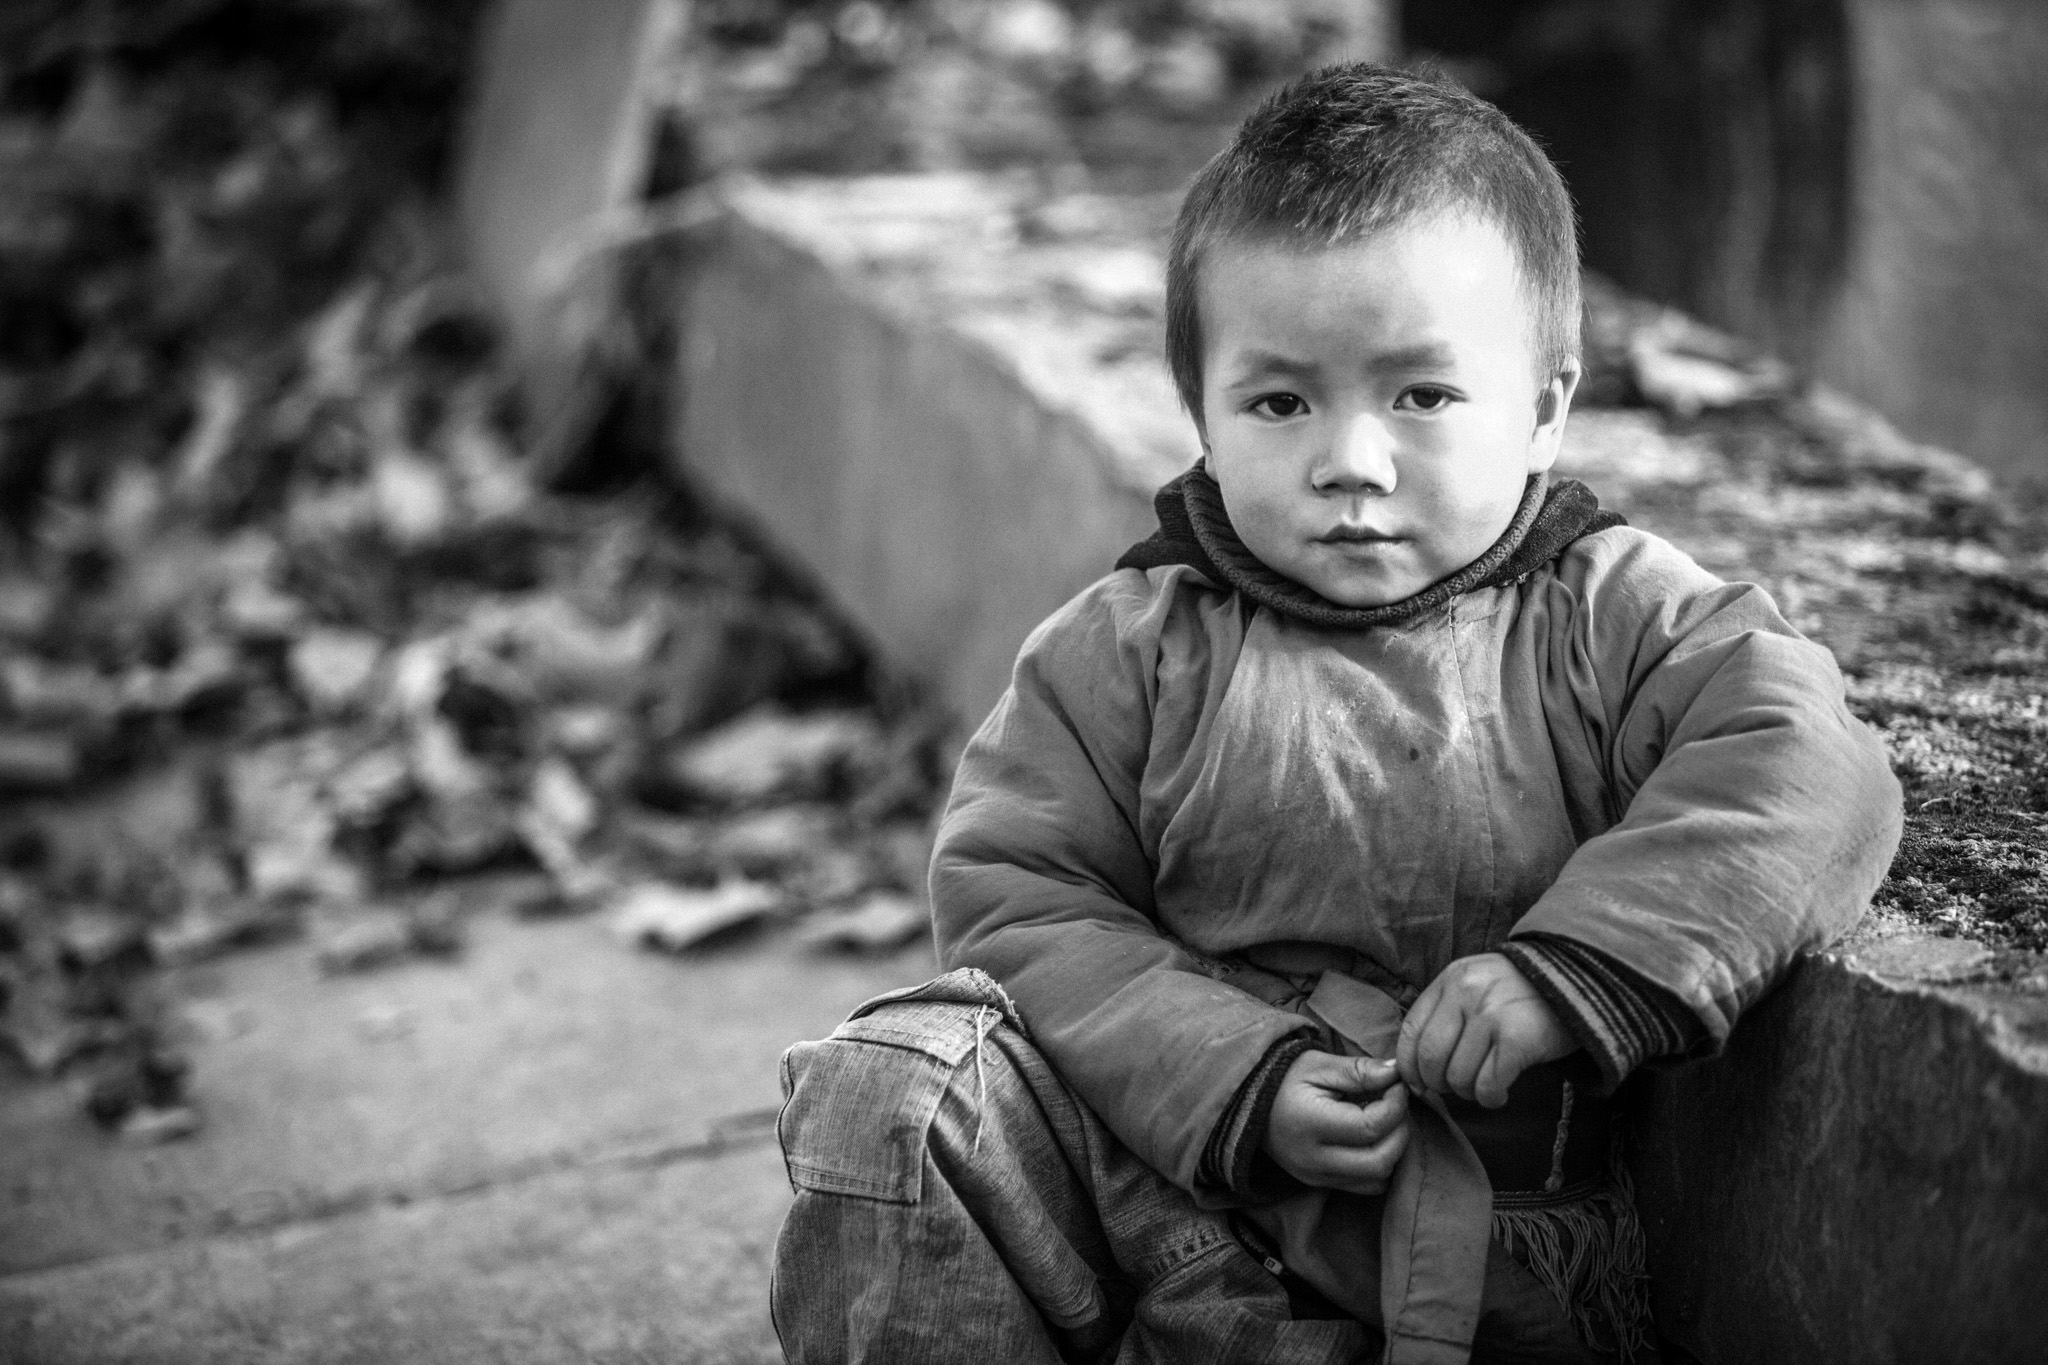 A young Miao boy who warmed up to me as I approached him with my camera...